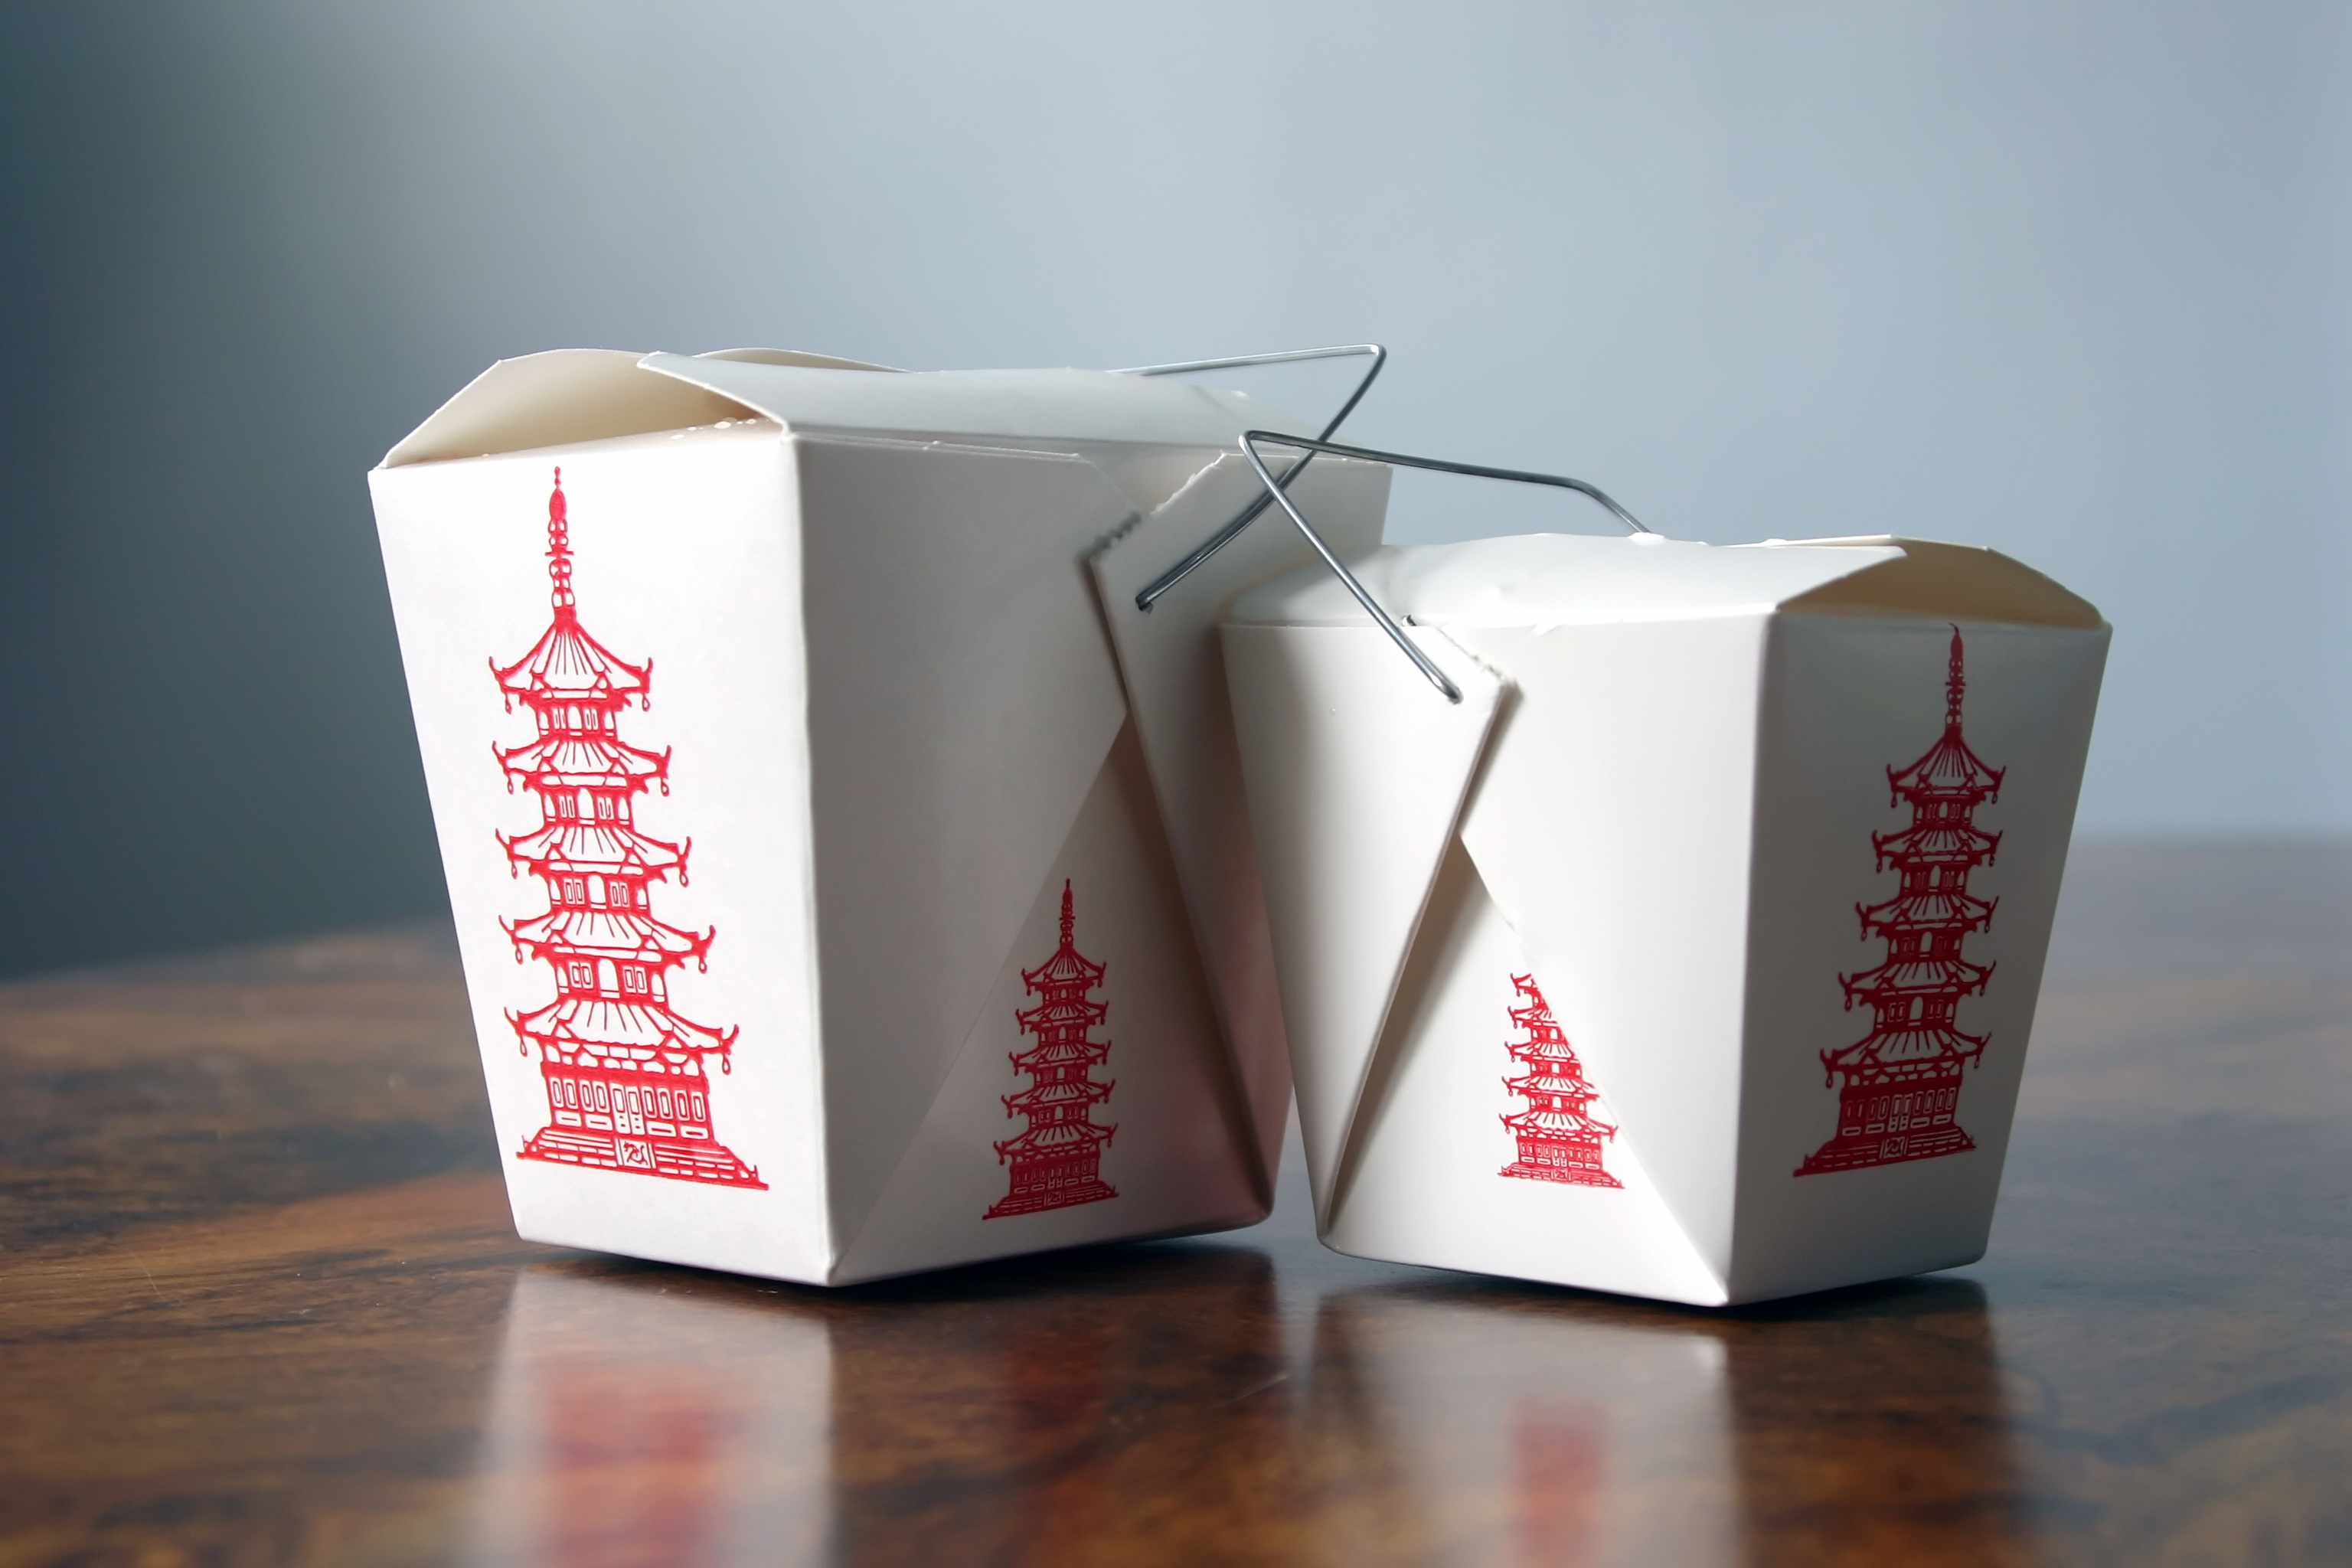 Two Chinese food takeout pail boxes.